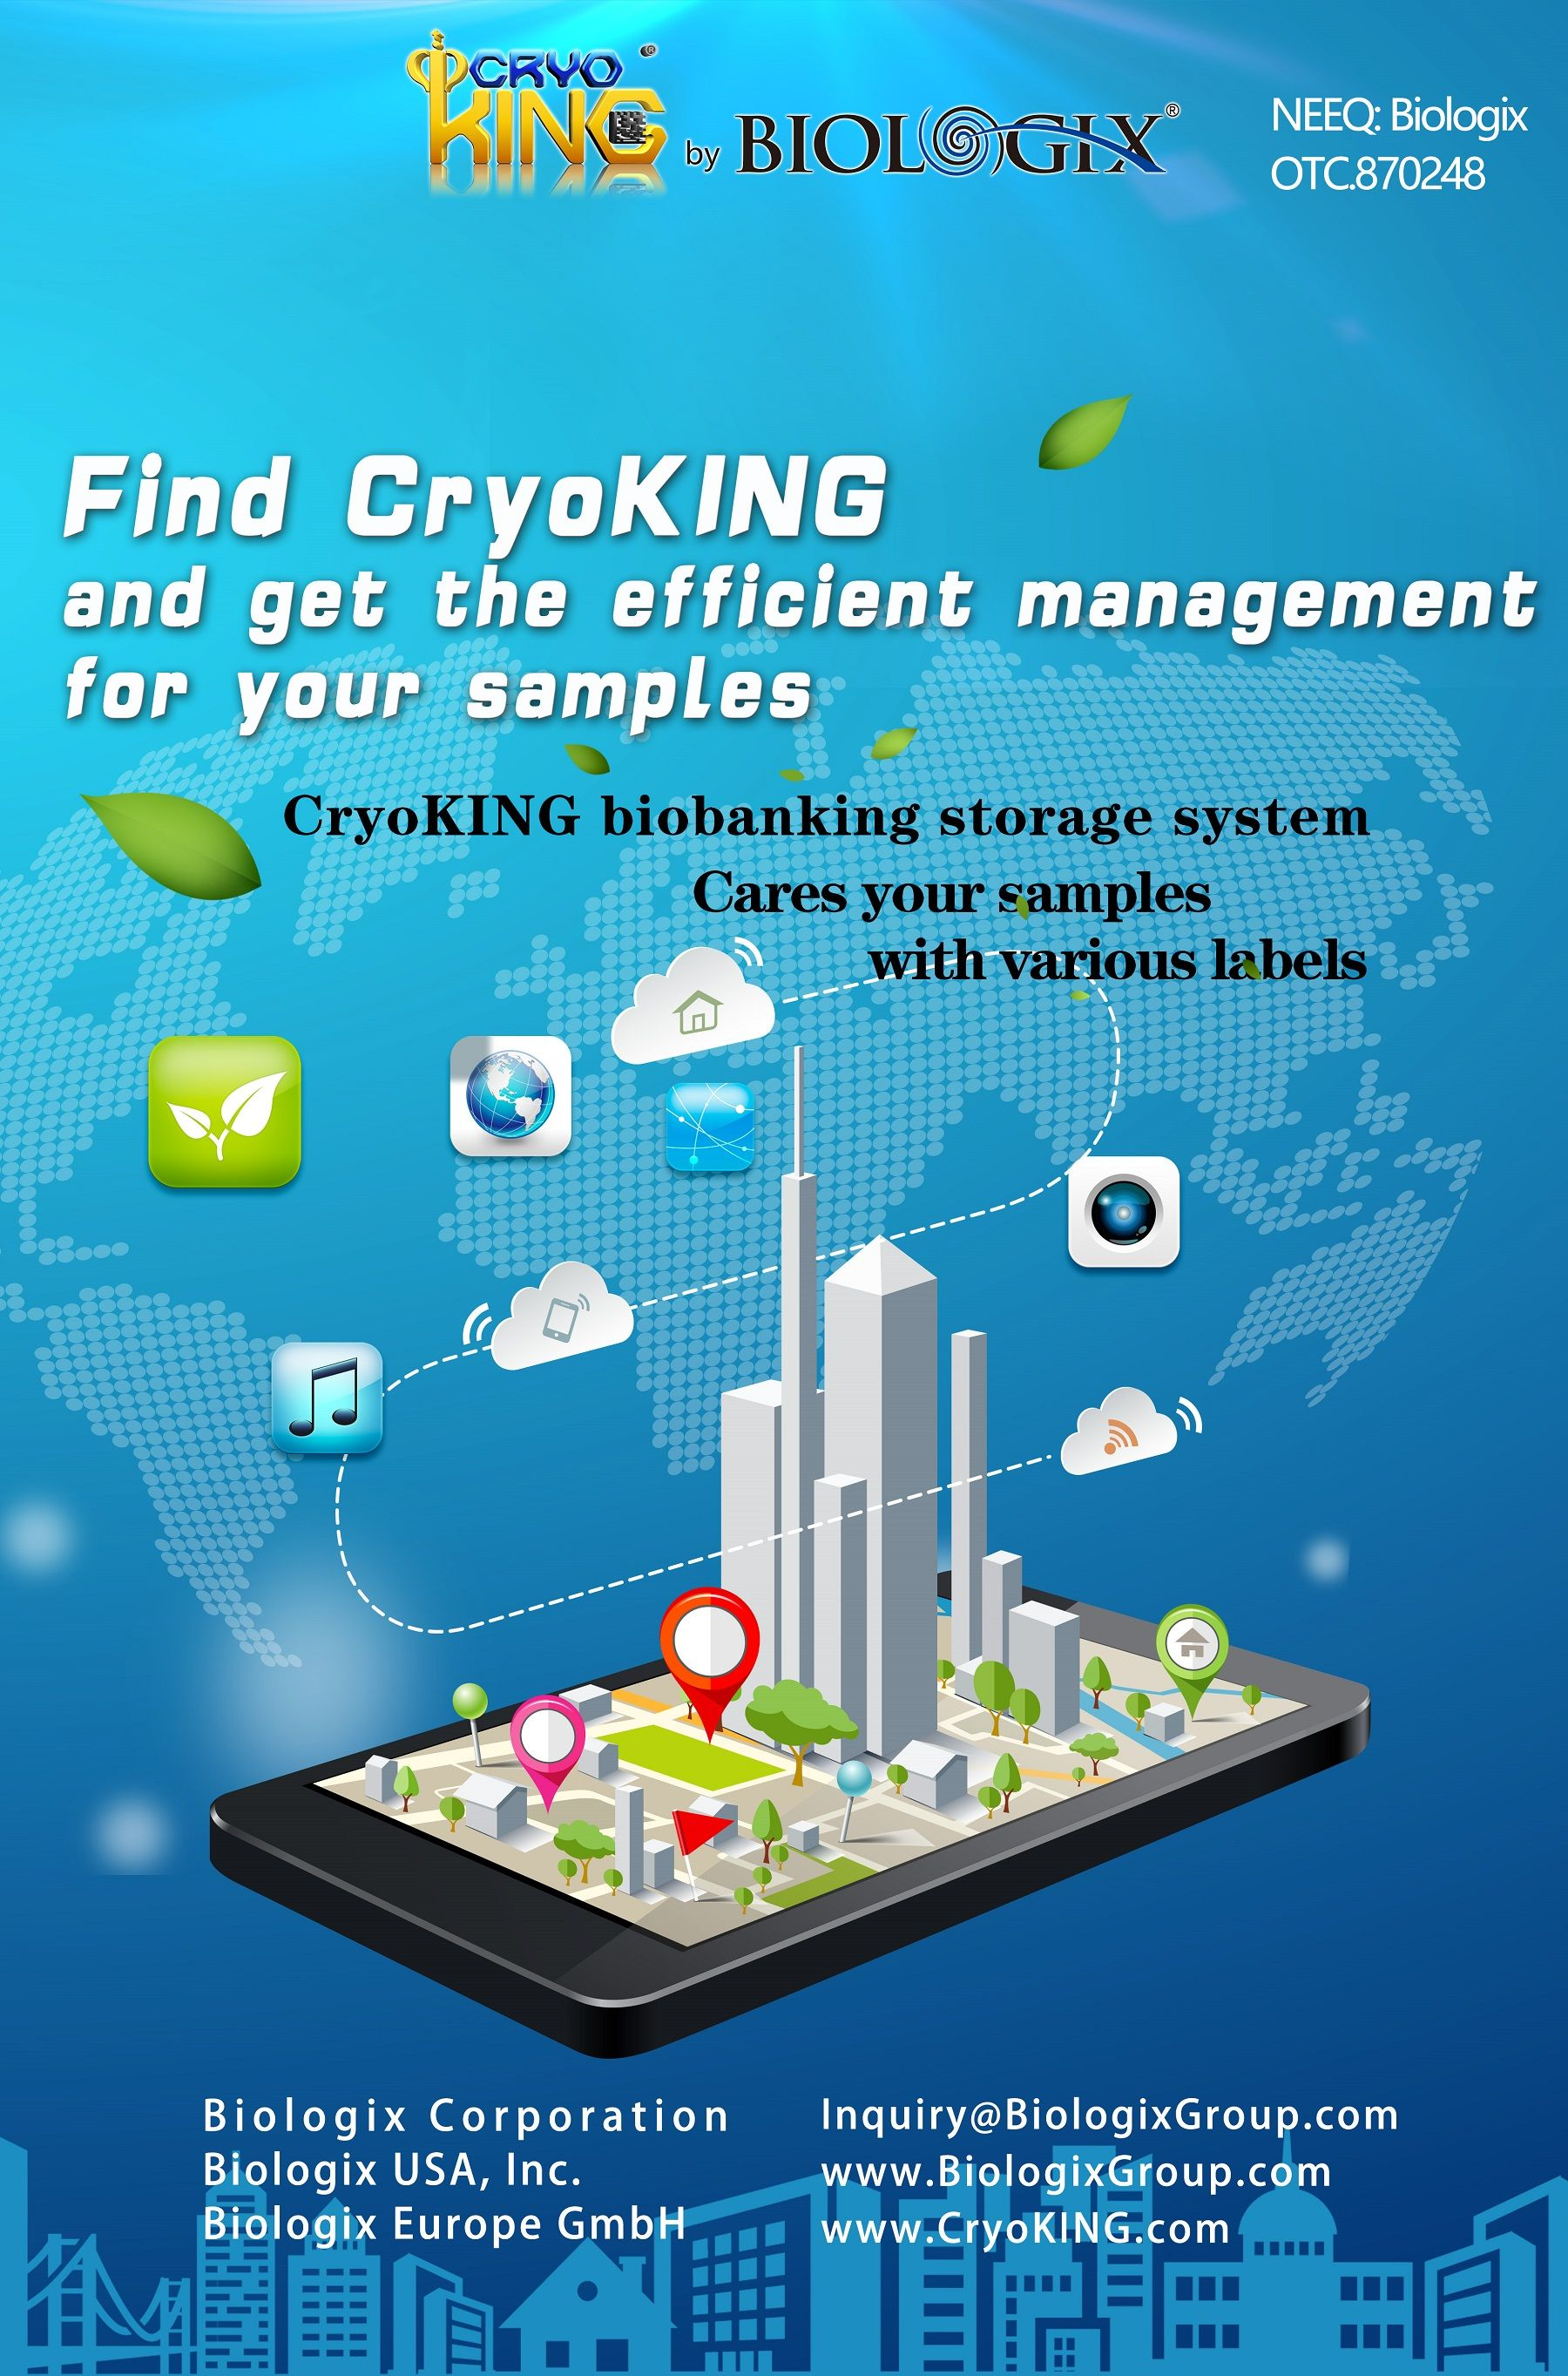 Cryoking Biobanking Storage System Cares Your Samples With